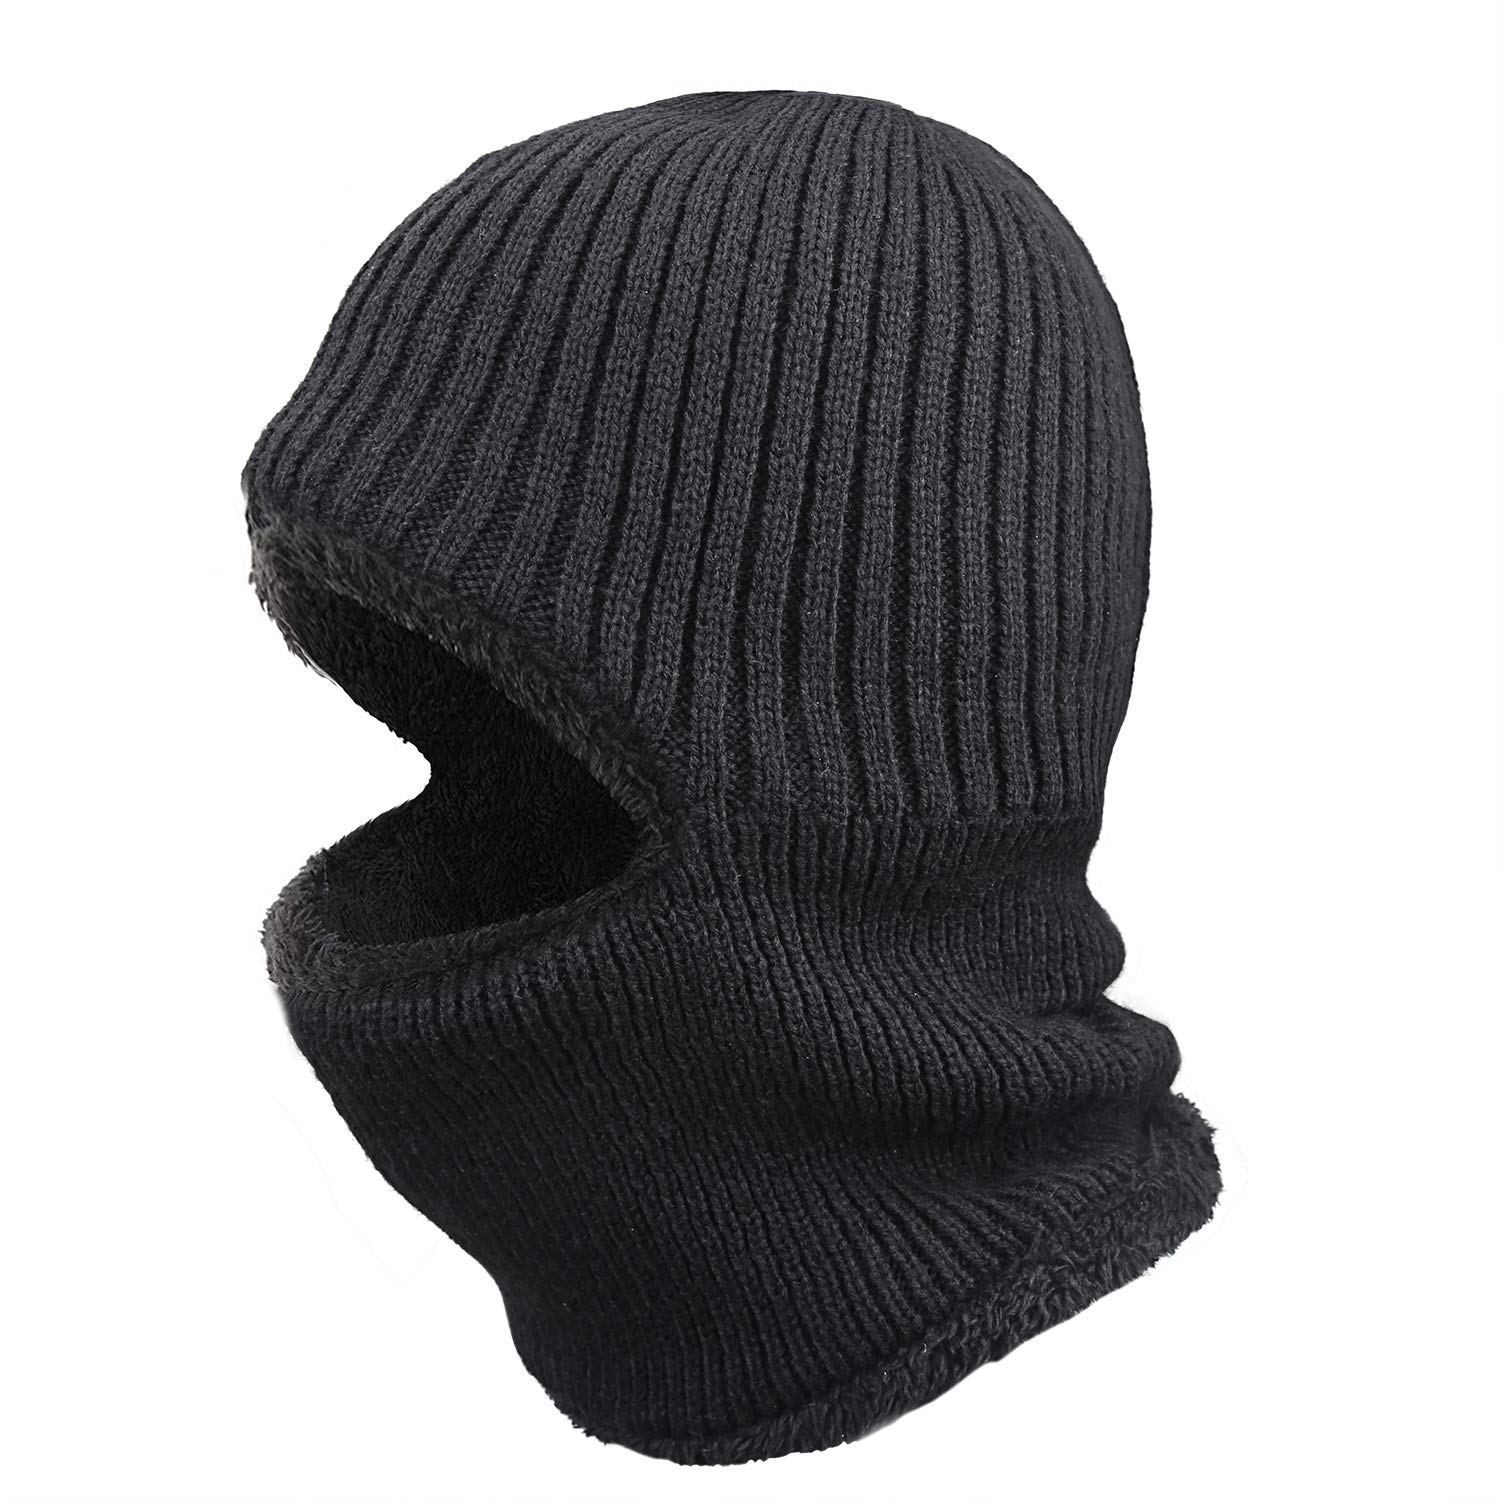 Muuttaa Warm Knitted Balaclava Beanie Hat, 3-in-1Windproof Ski Face Mask Winter Hats